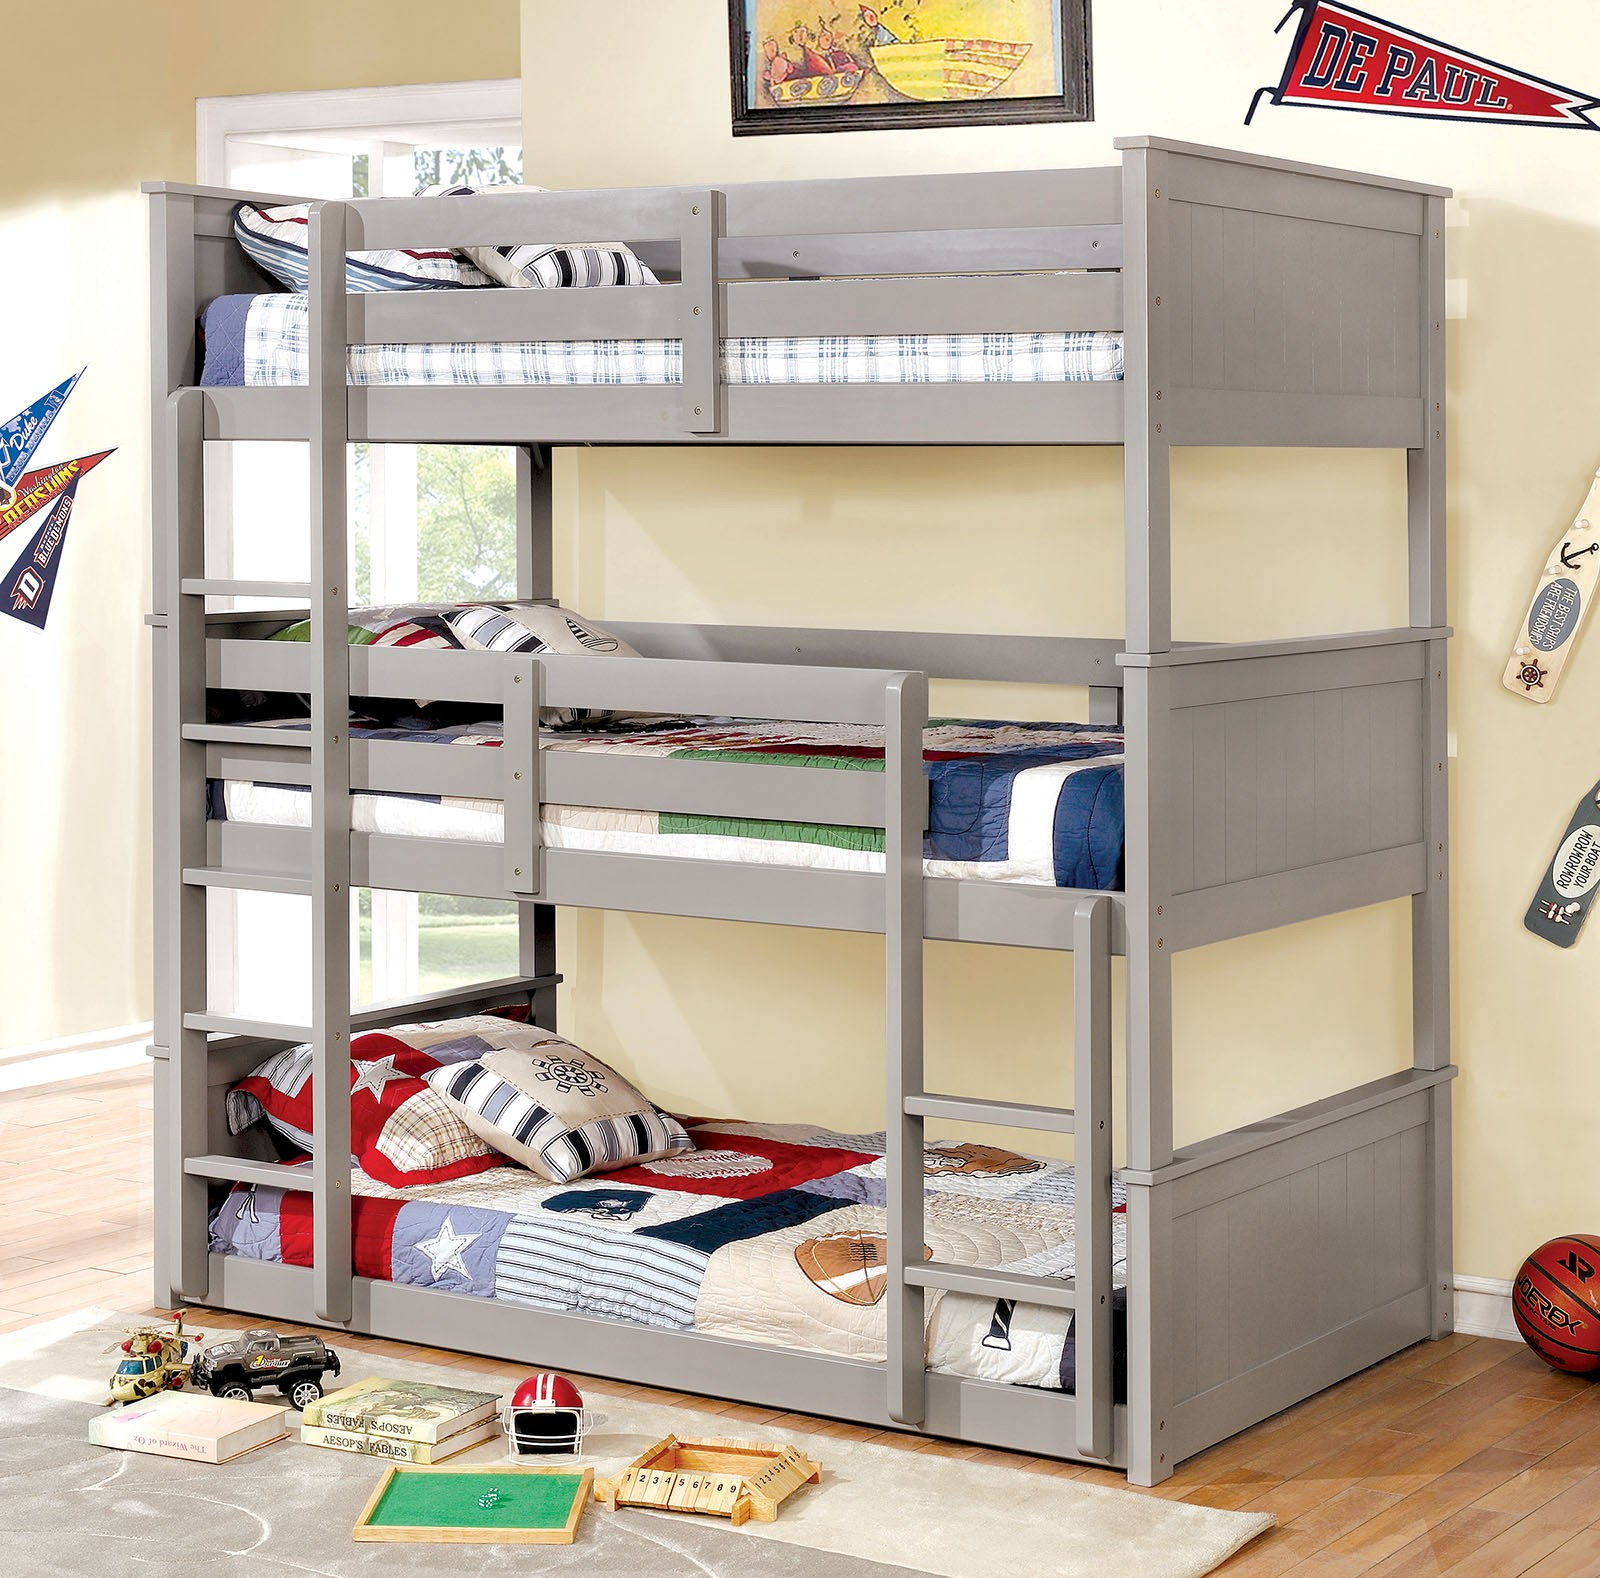 3 Twin Beds In The Space Of 1 3 Tier Beds The Bed Trend For Space Short Kid Plenty